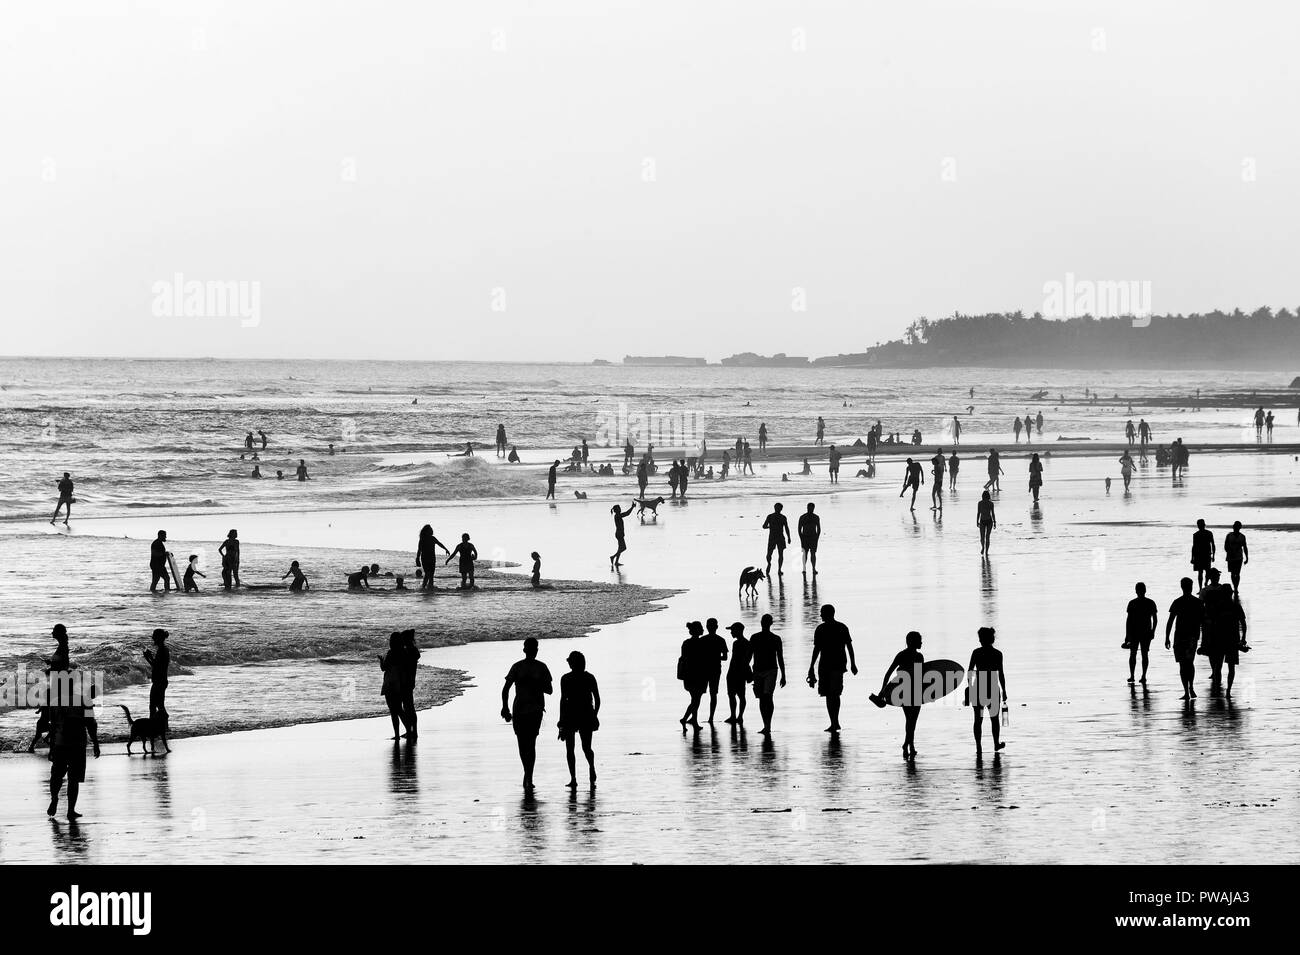 People walking on the ocean beach. Black and white. Bali island, Indonesia - Stock Image